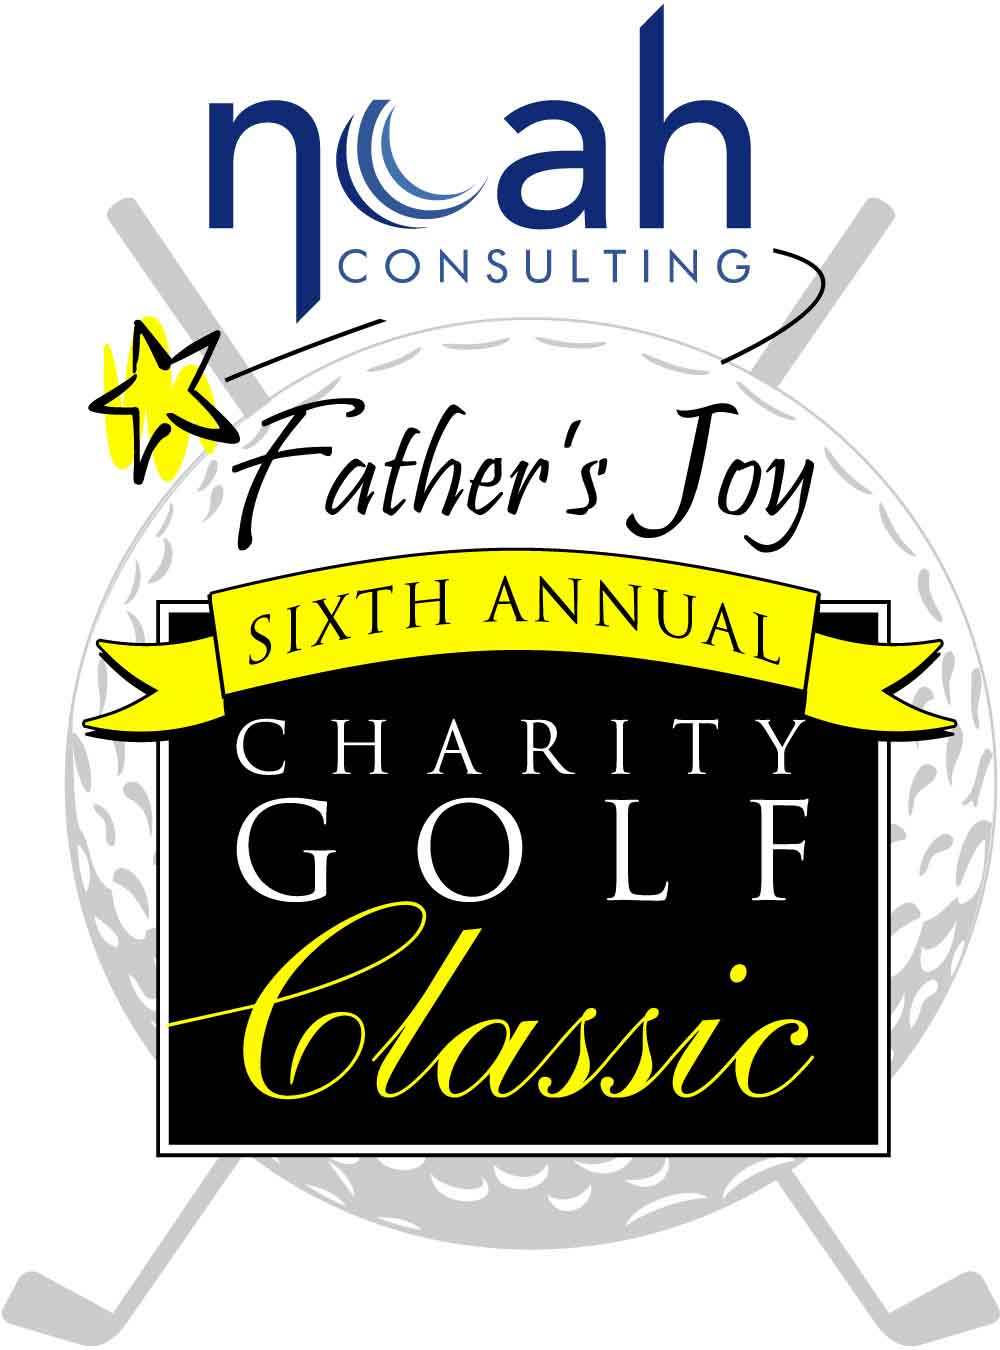 Noah Consulting Father's Joy Charity Golf Classic